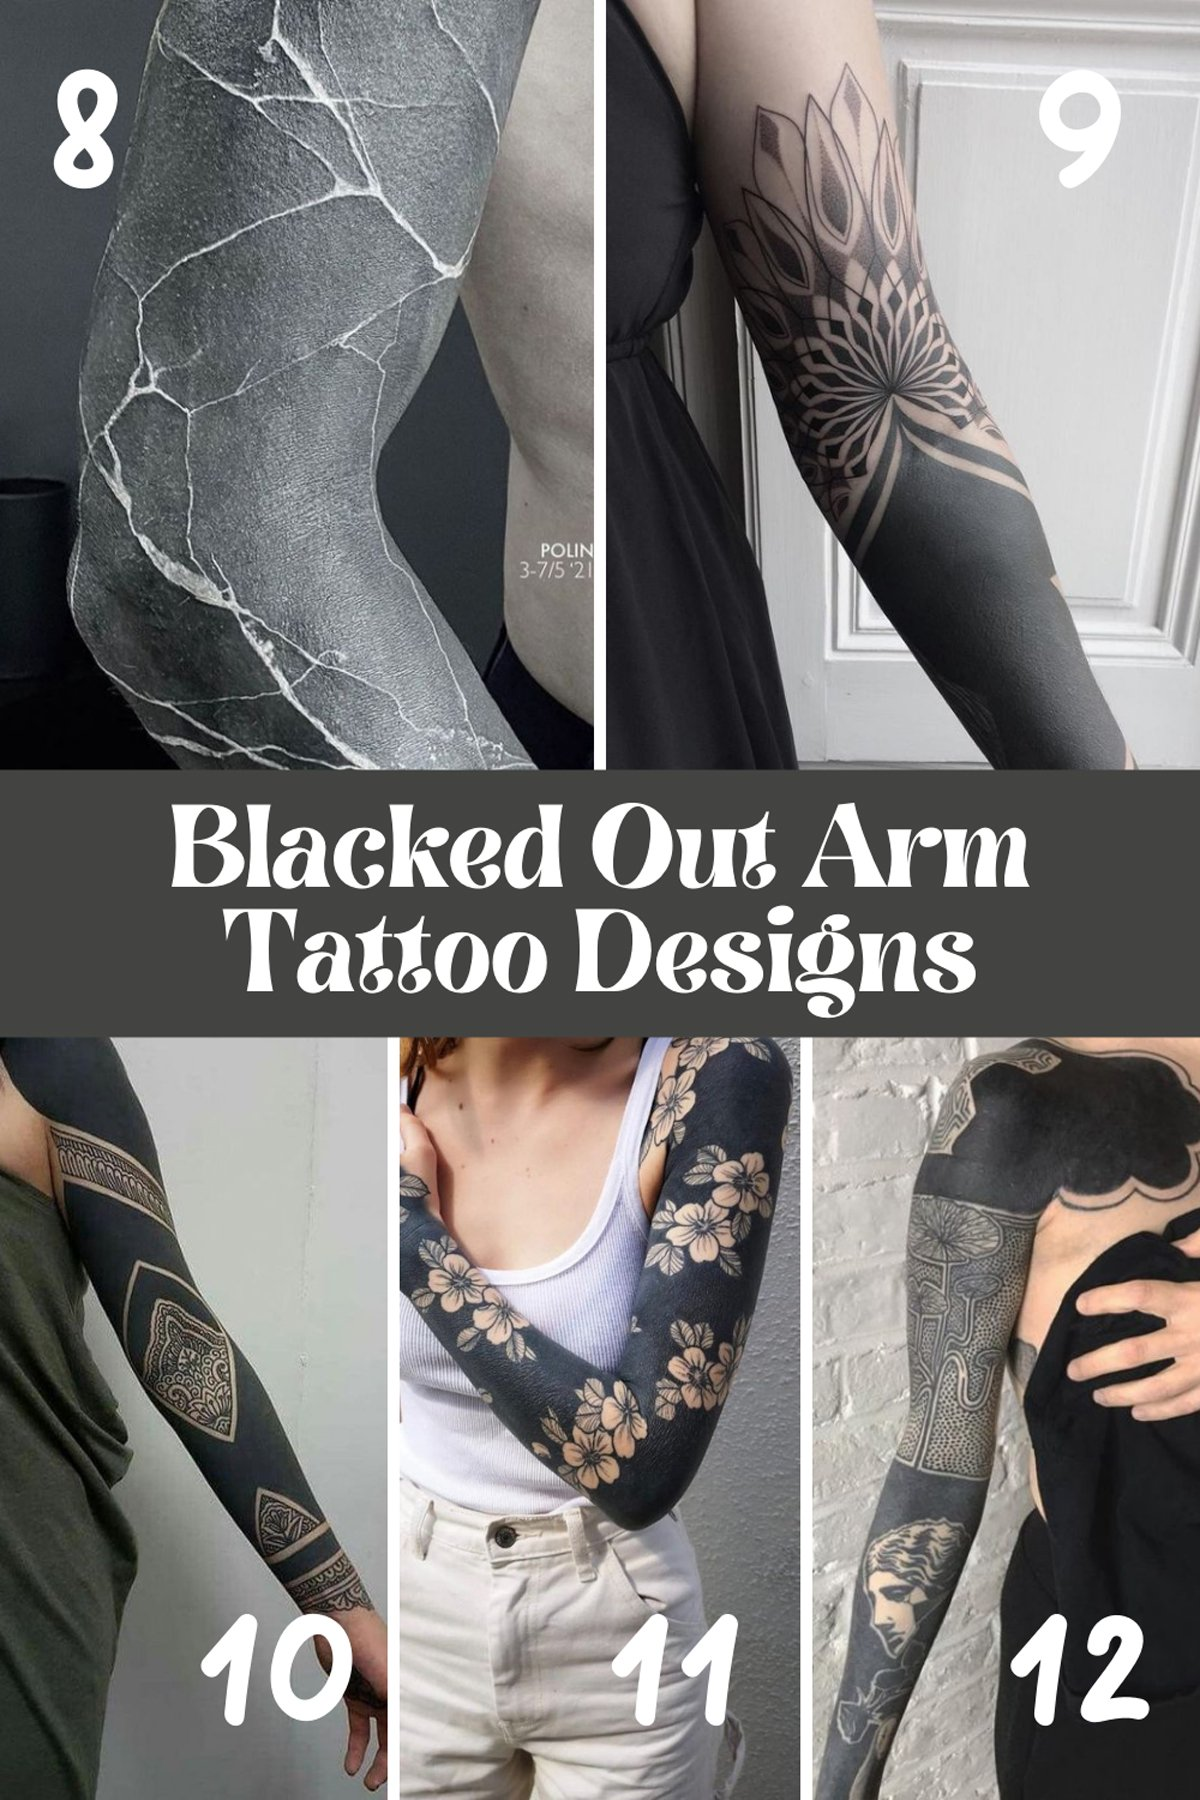 All Black Tattoo Design For Arms